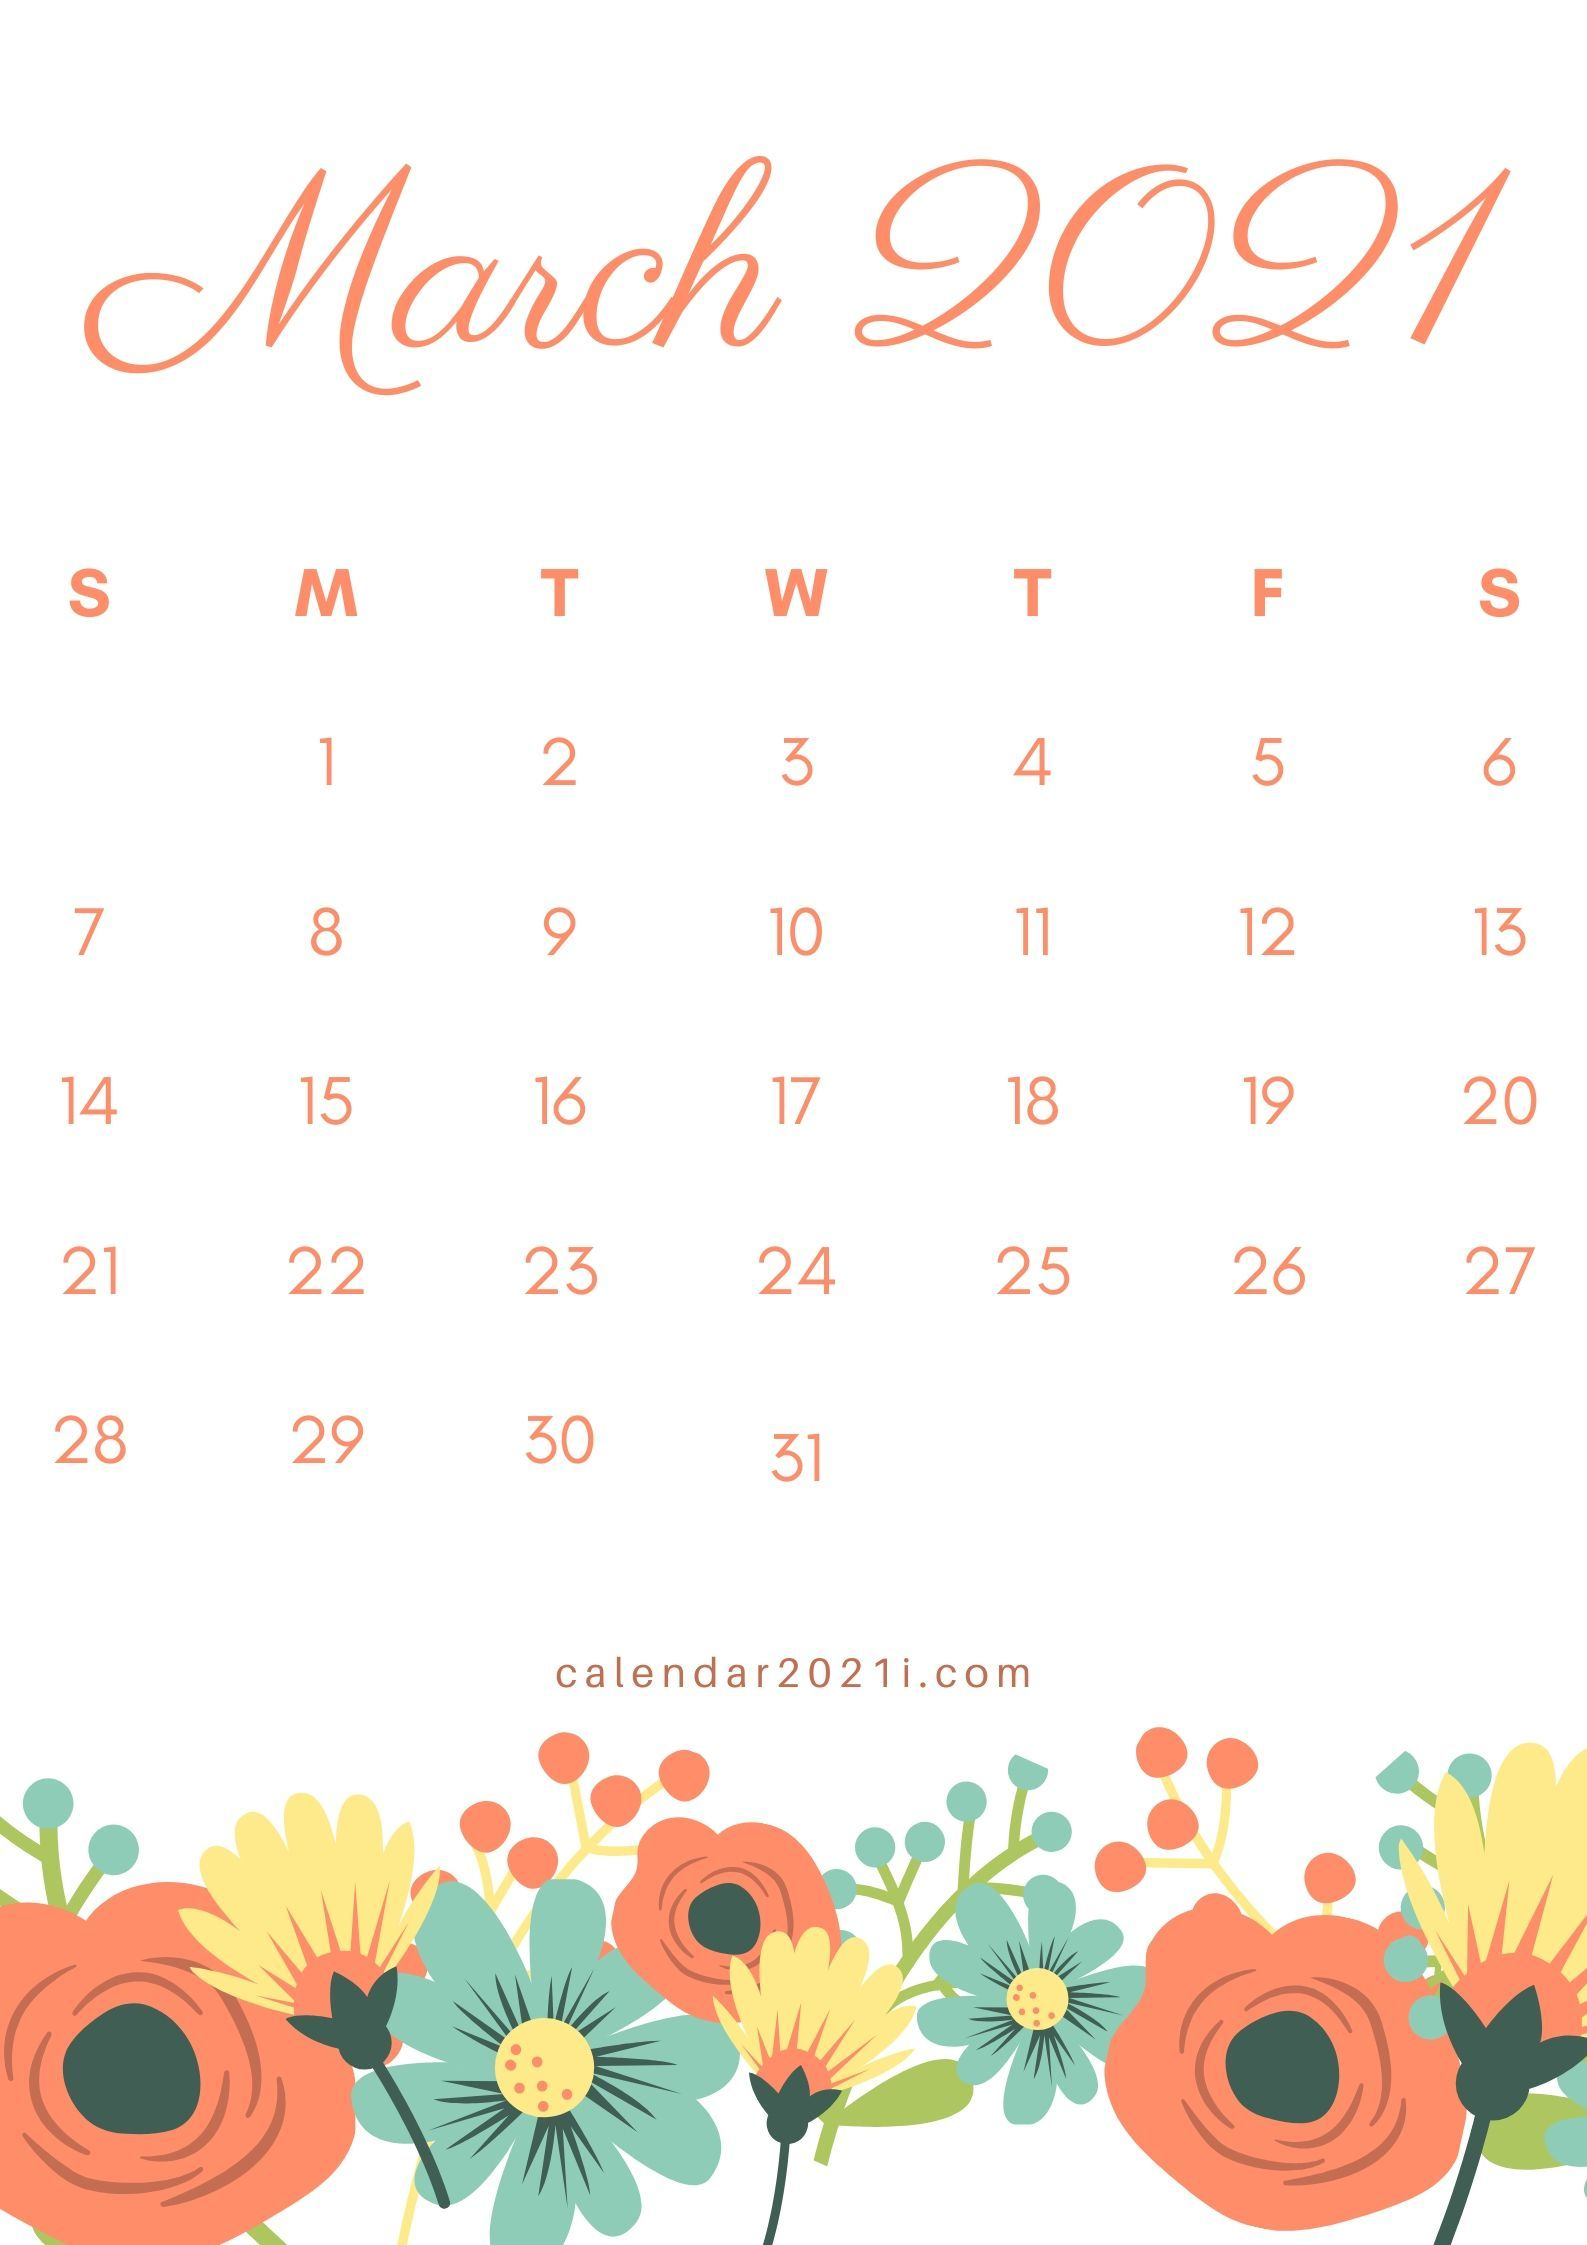 March 2021 Floral Calendar Printable Design Diy Template in Tropical Floral: Calendar 2021 Monthly